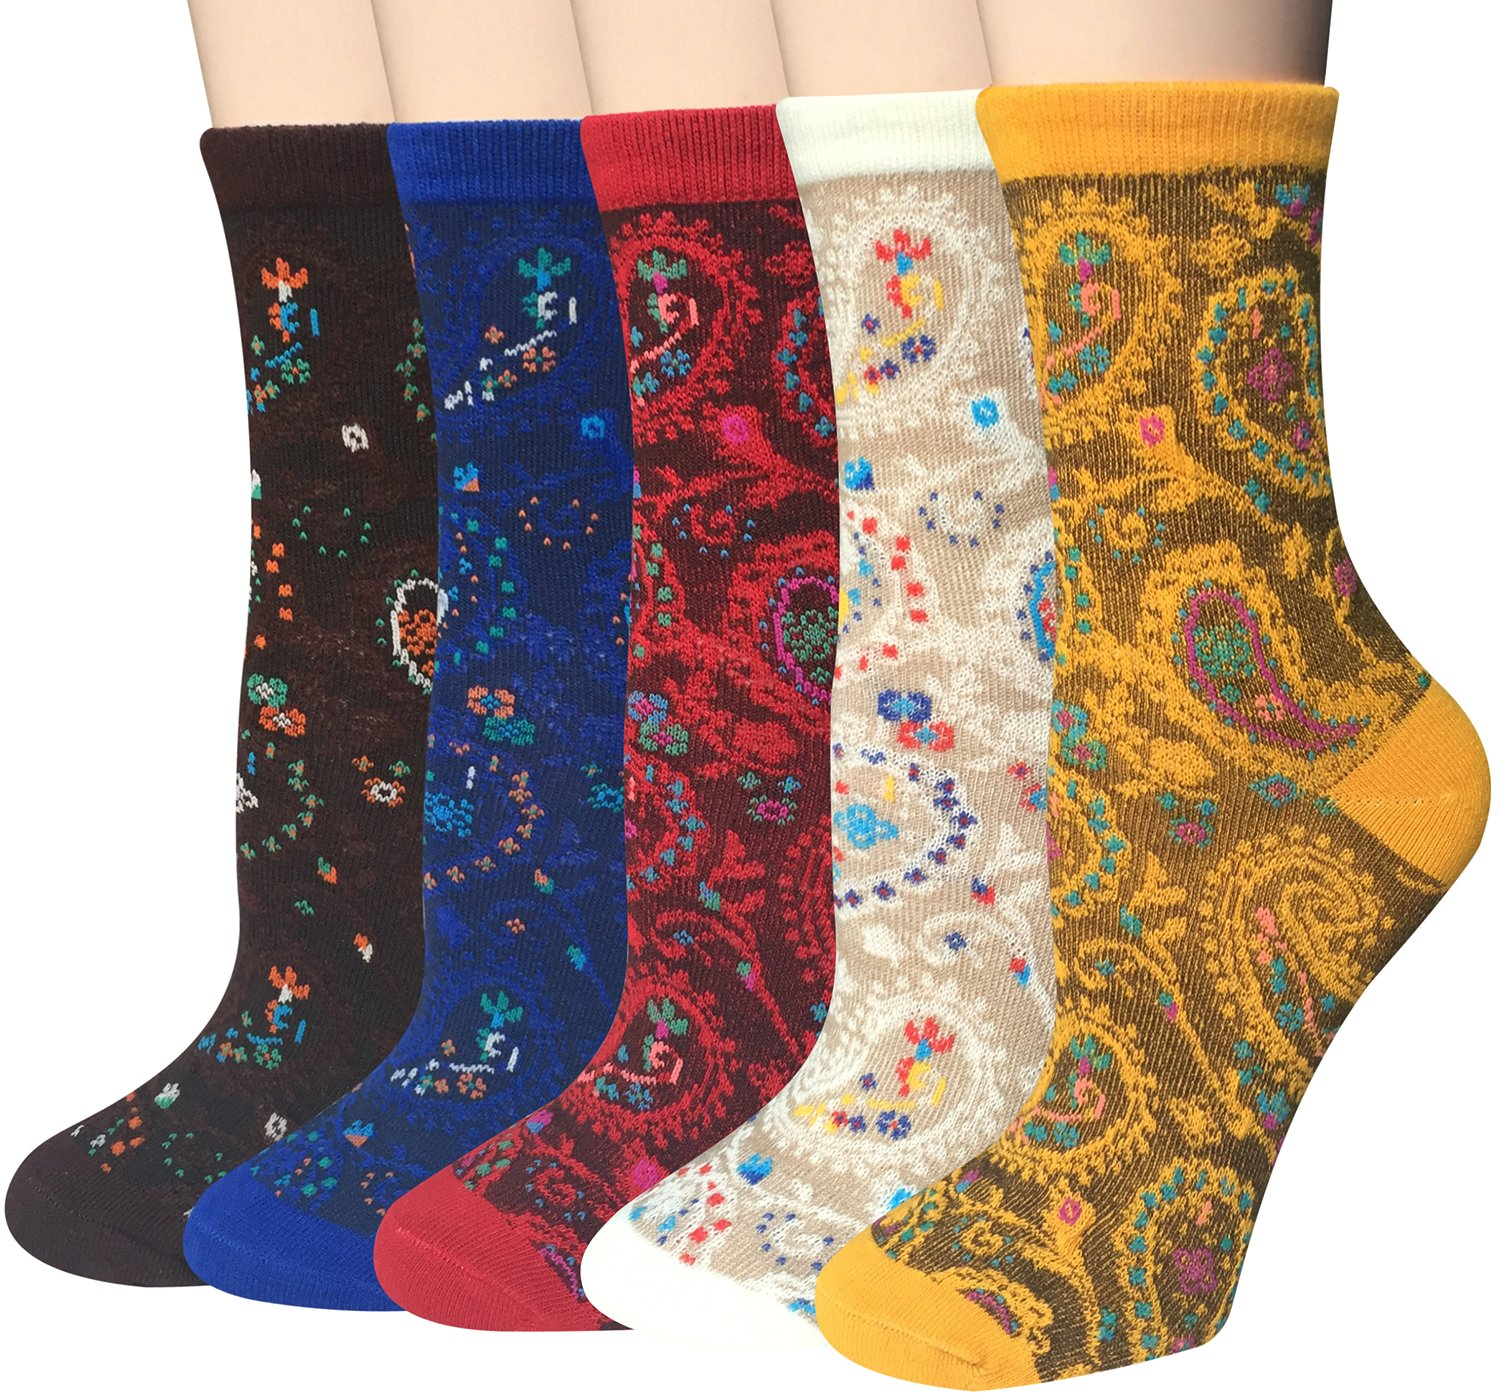 Chalier 5 Pairs Womens Winter Warm Funny Casual Cotton Crew Animal Socks Style 02 One Size